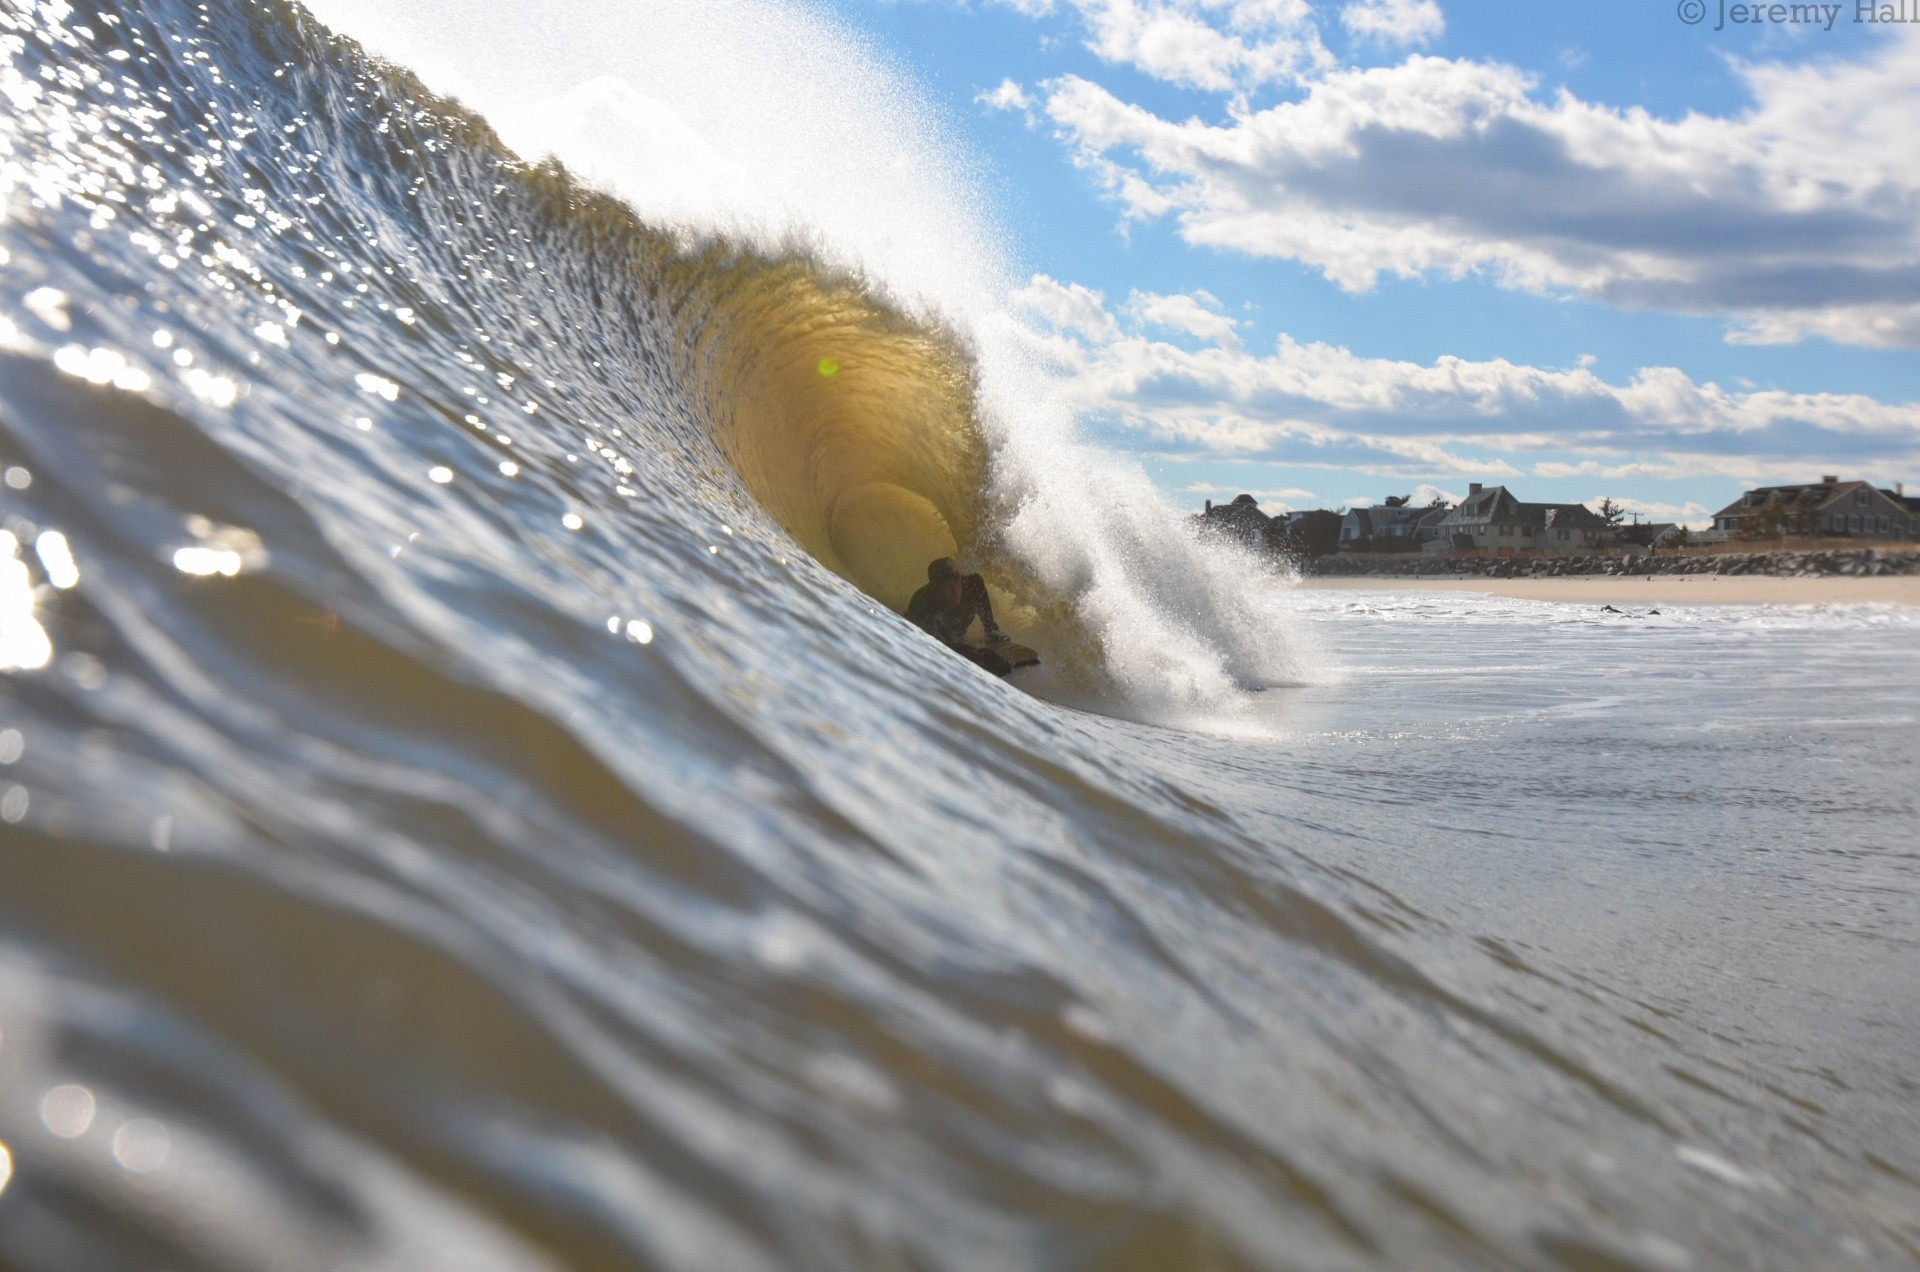 Jeremy Hall Photography's photo of Manasquan